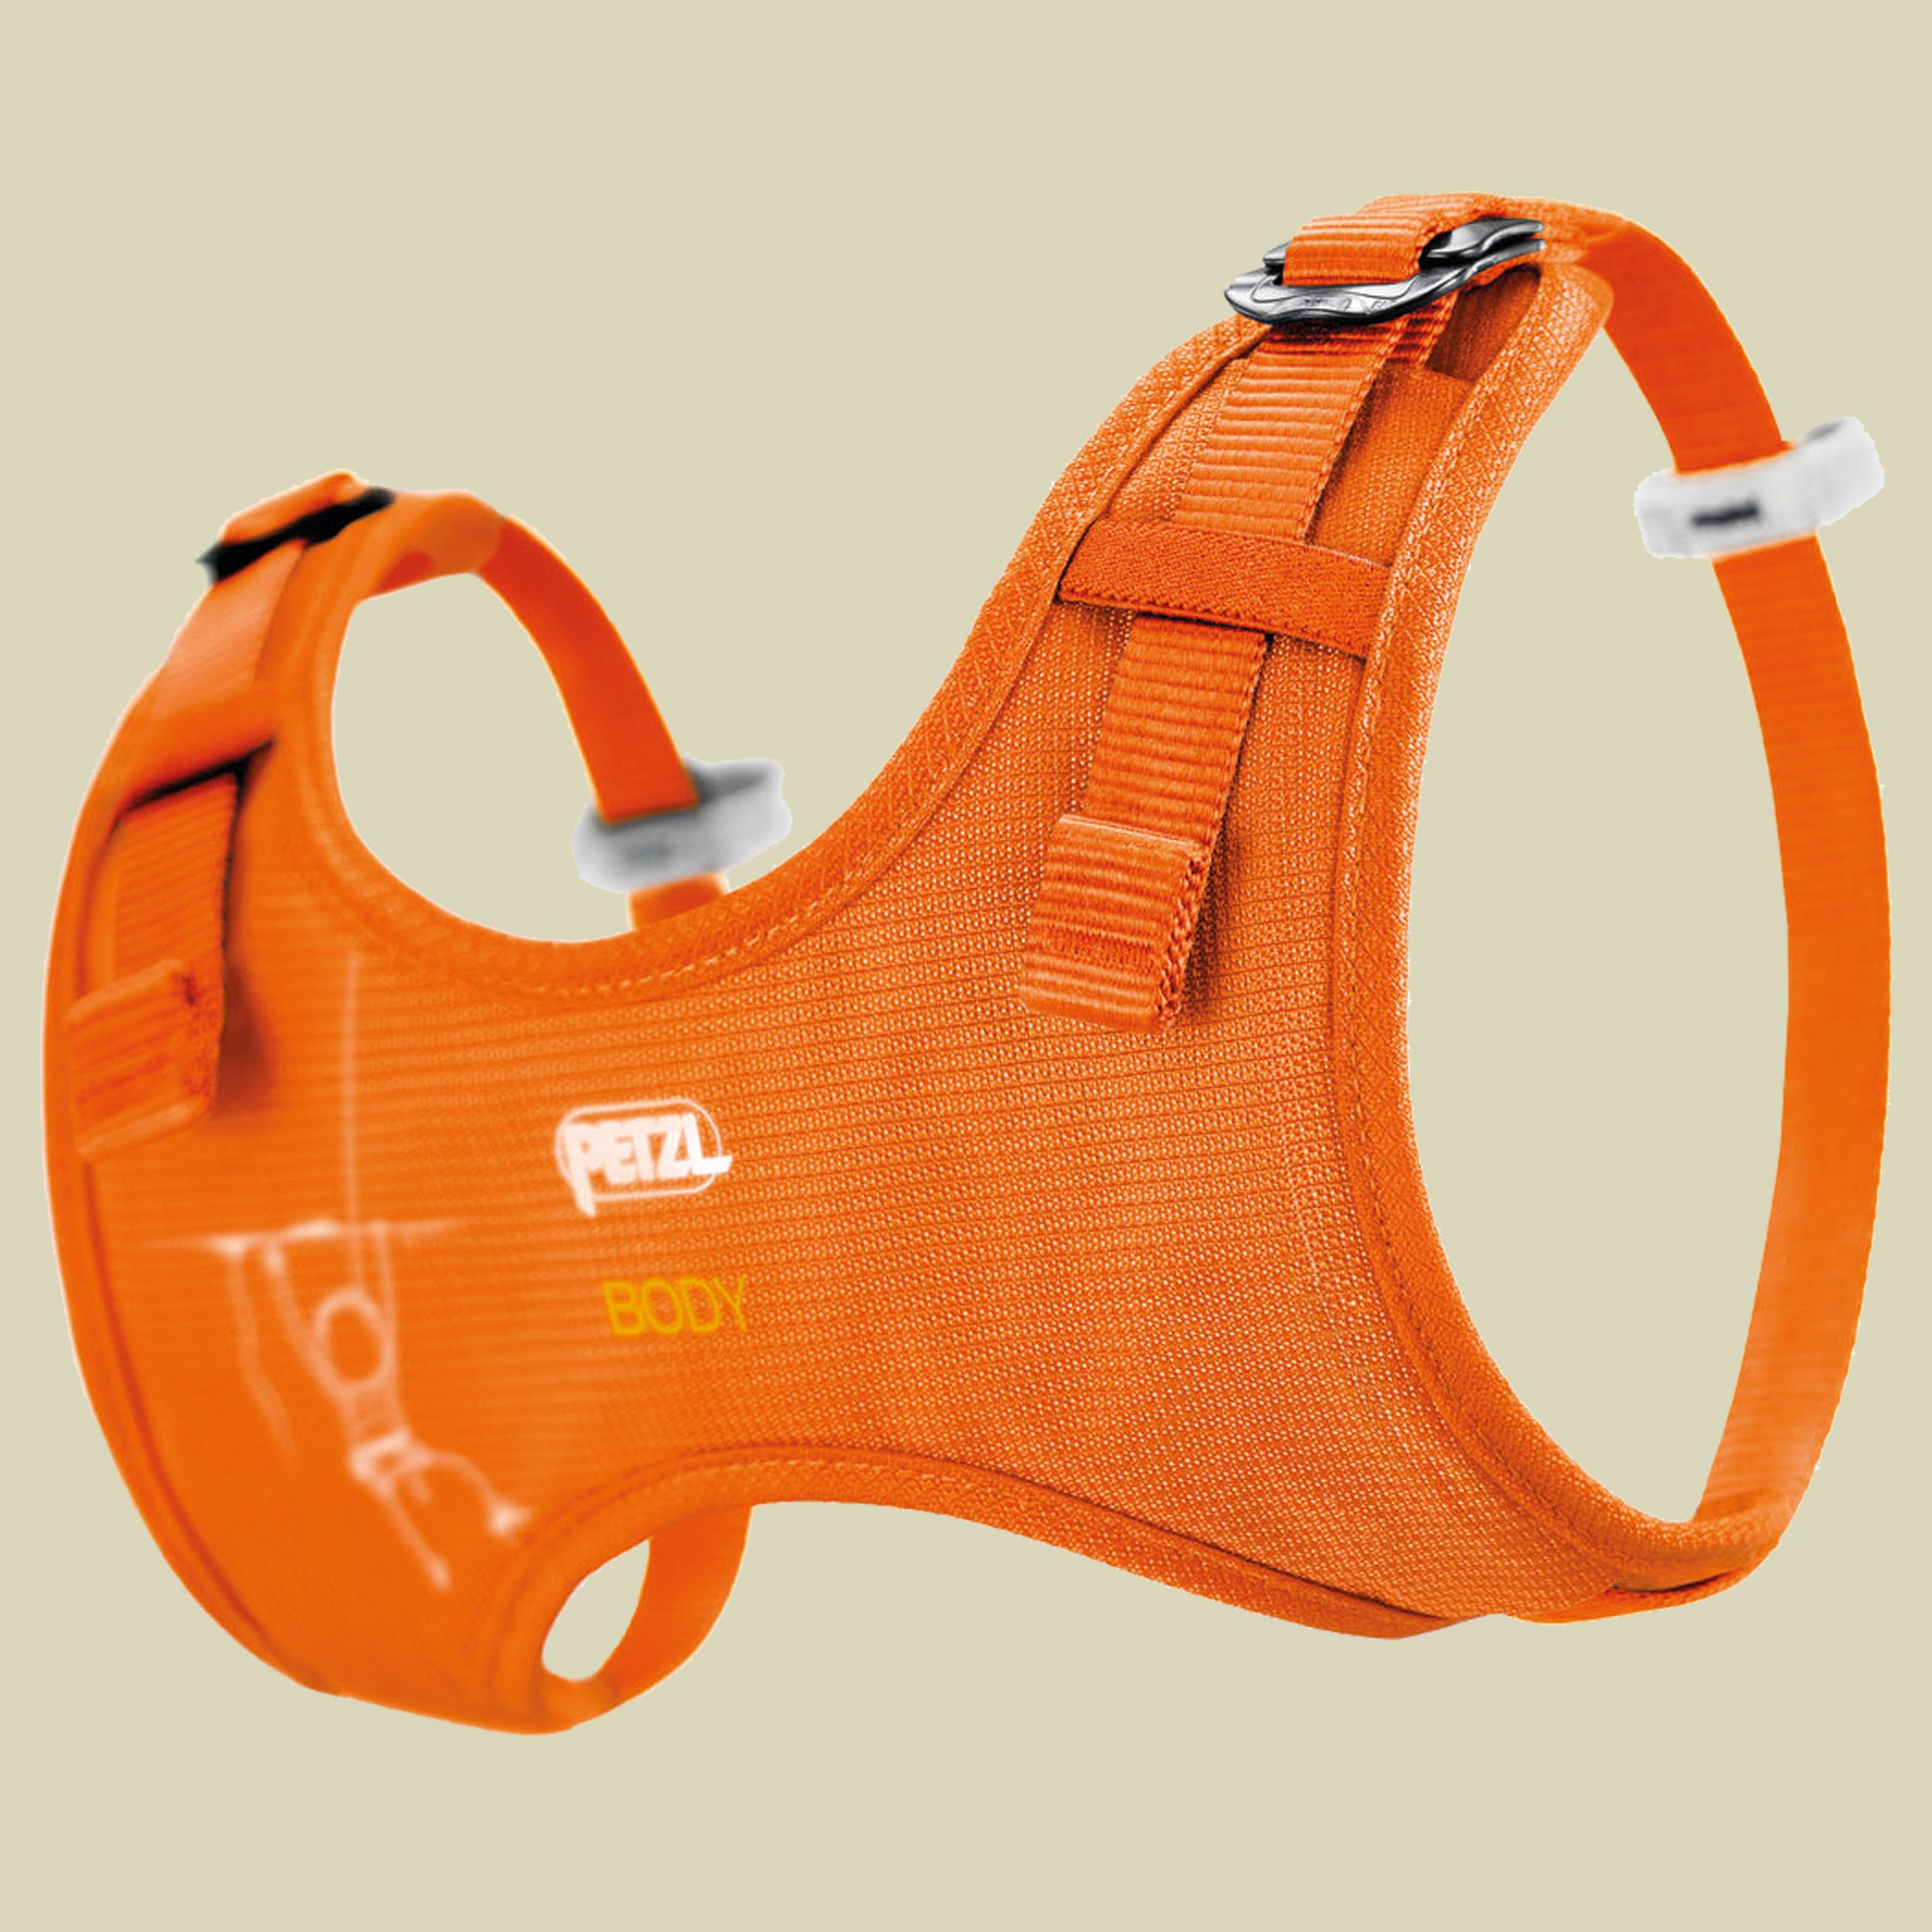 petzl_kinderbrustgurt_C18AC_Body_orange_2_fallback